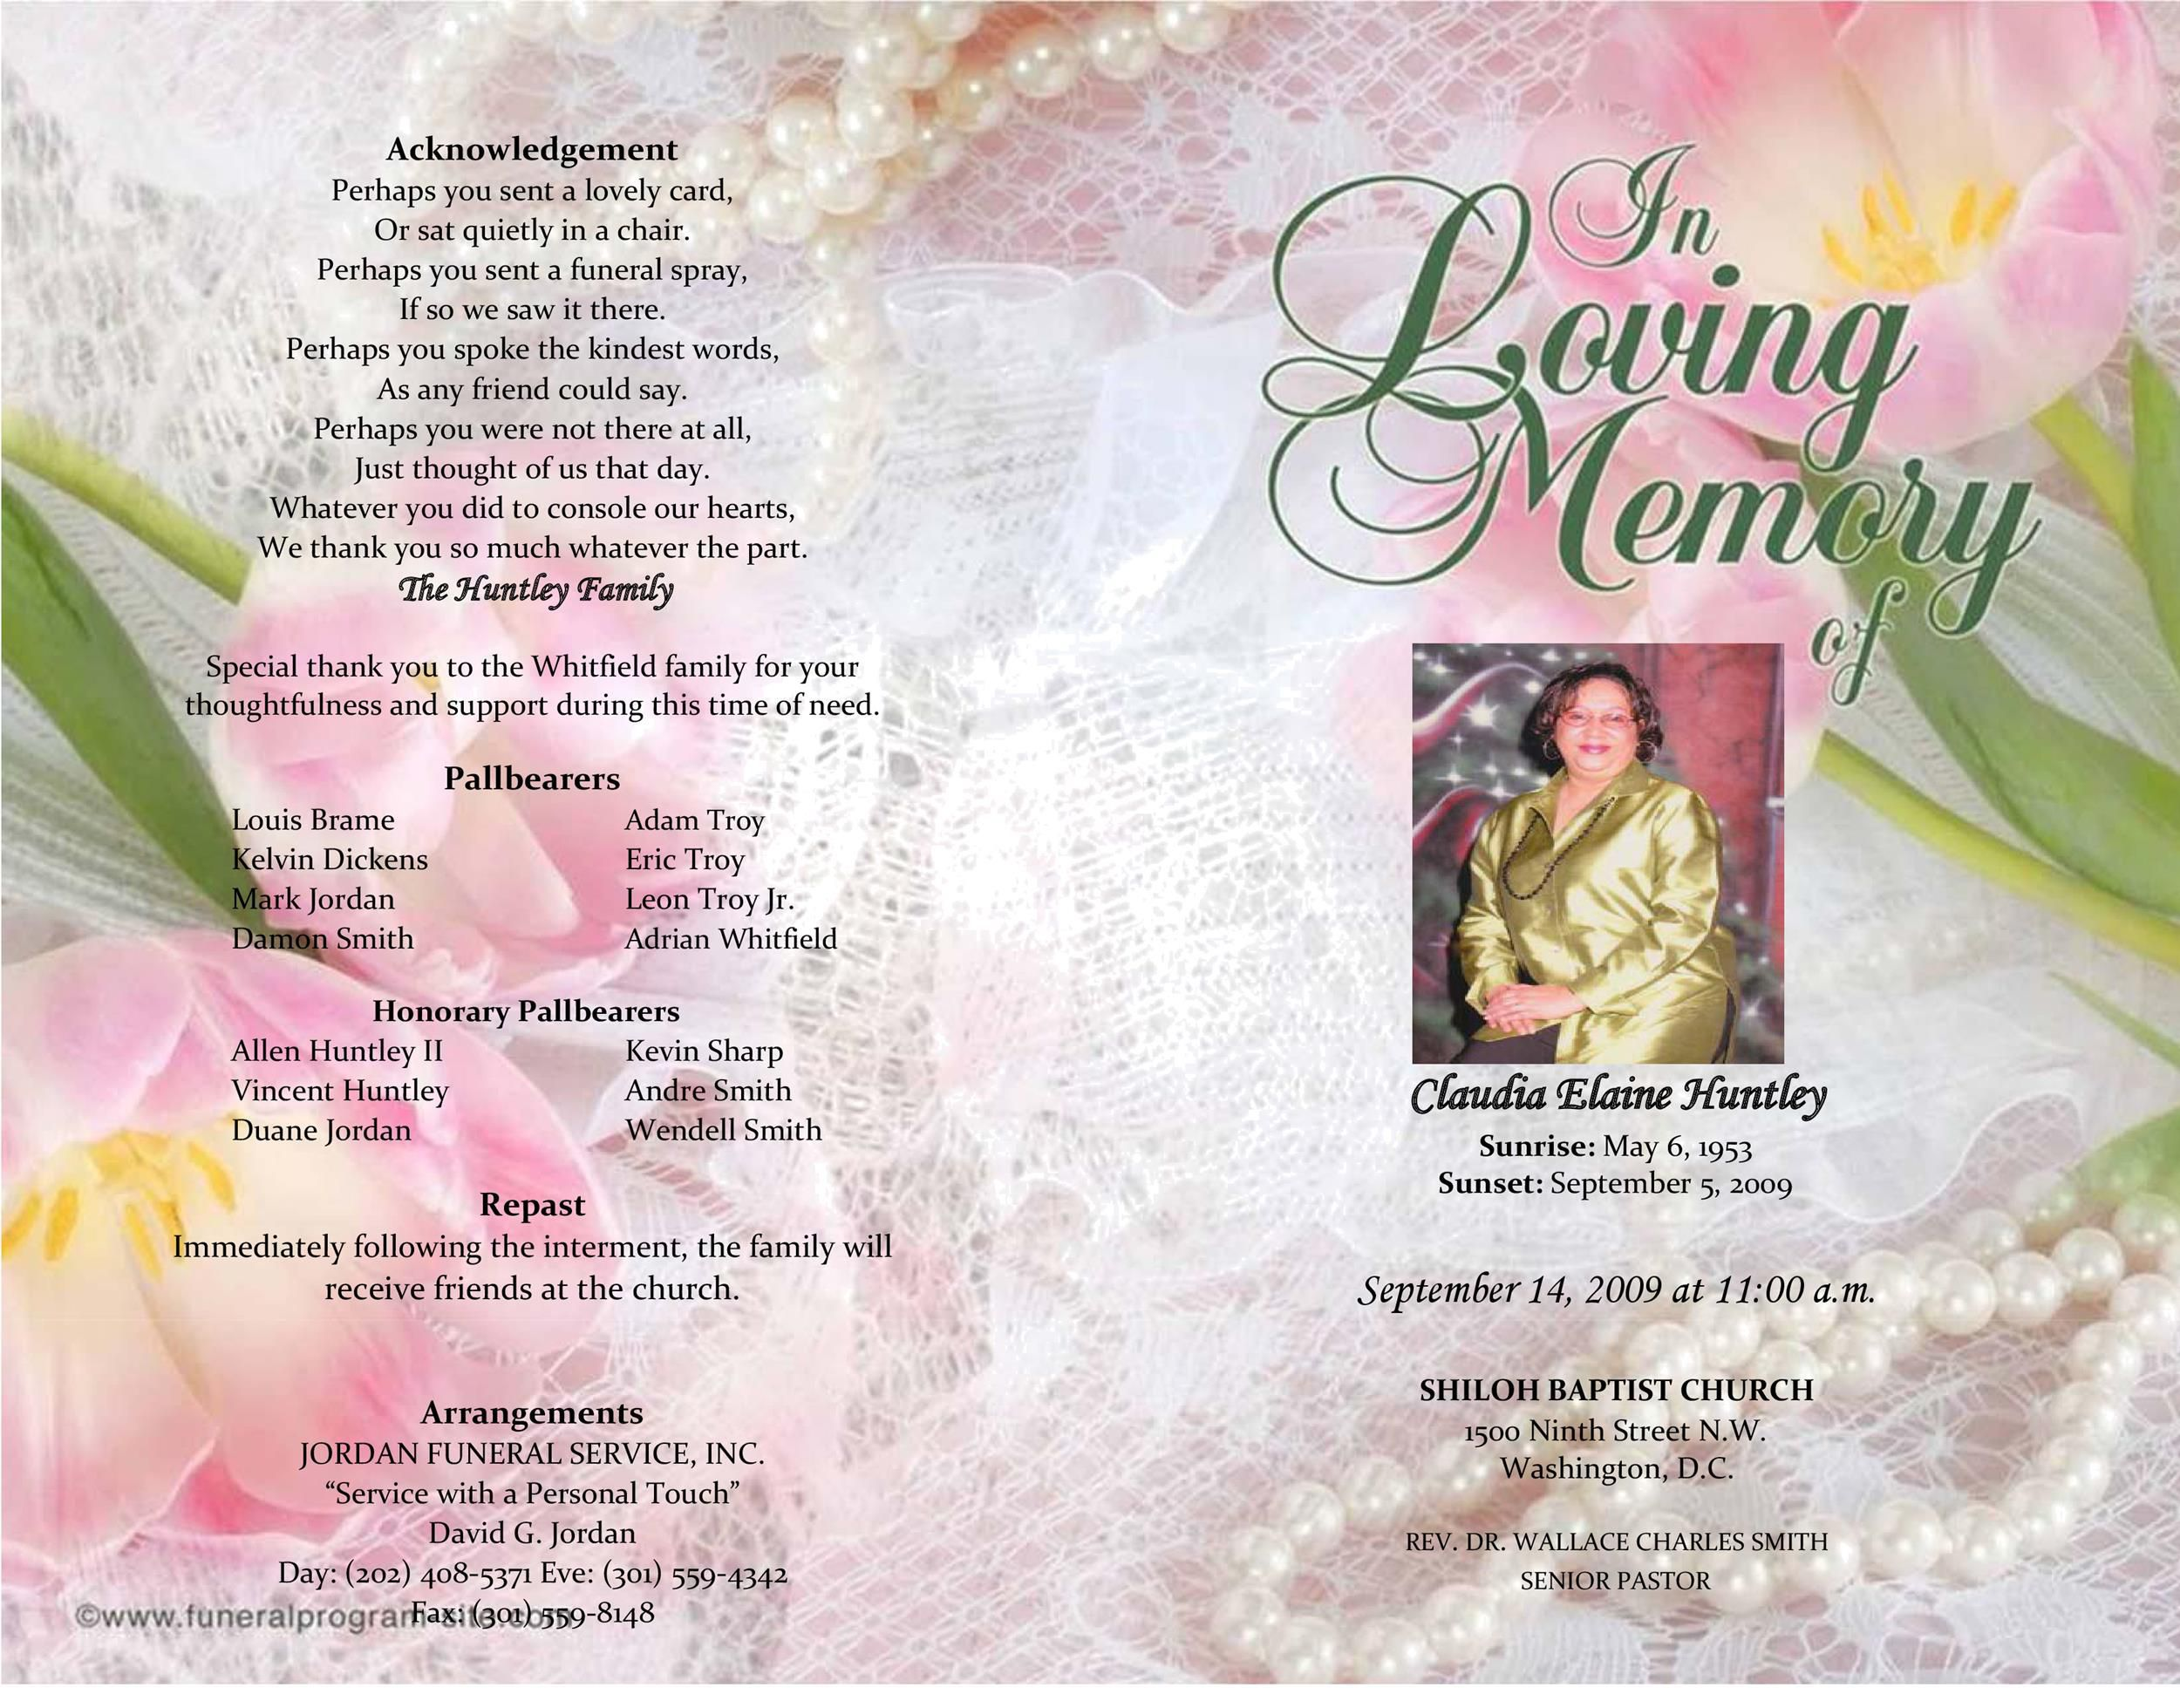 006 Staggering Example Funeral Programme High Def  Format Of Program Template Free To DownloadFull